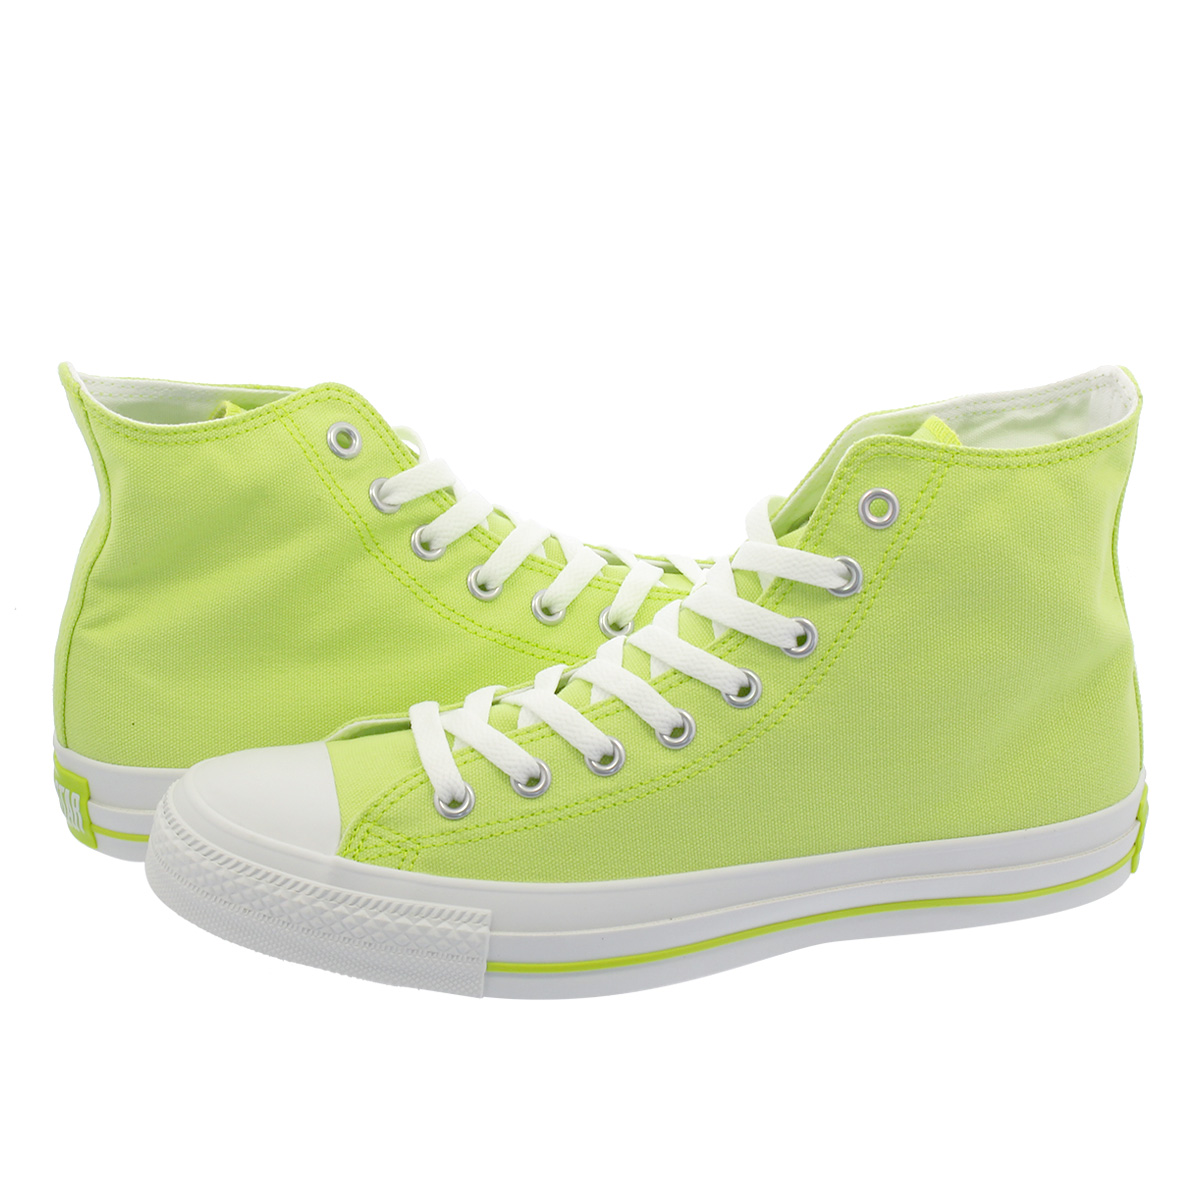 11ceb42dc2cf CONVERSE ALL STAR DRIPPATCH HI Converse all-stars drip coffee patch HI LIME  32962183